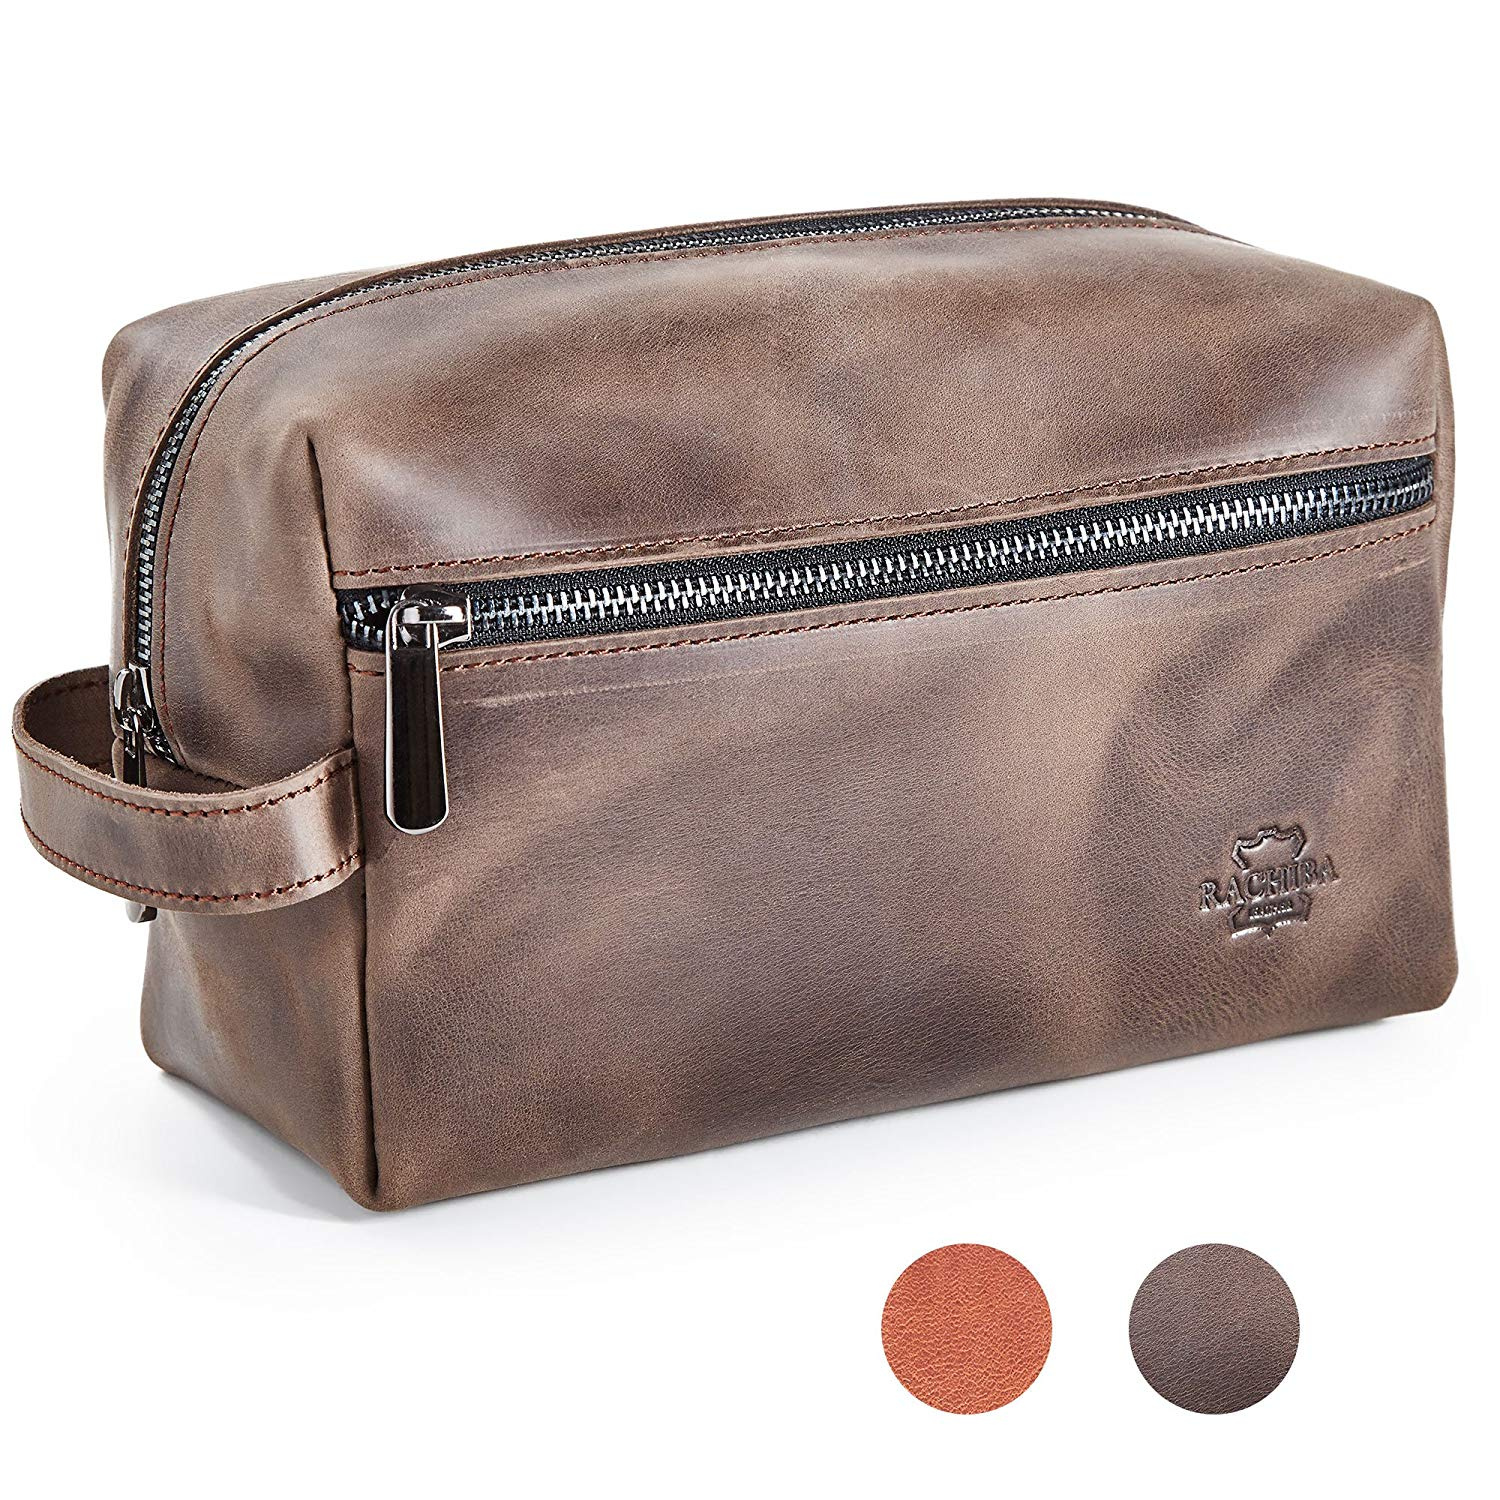 02bf3e1019 Leather Toiletry Bag Dopp Kit by Rachiba - Mens Leather Toiletry Bag ...